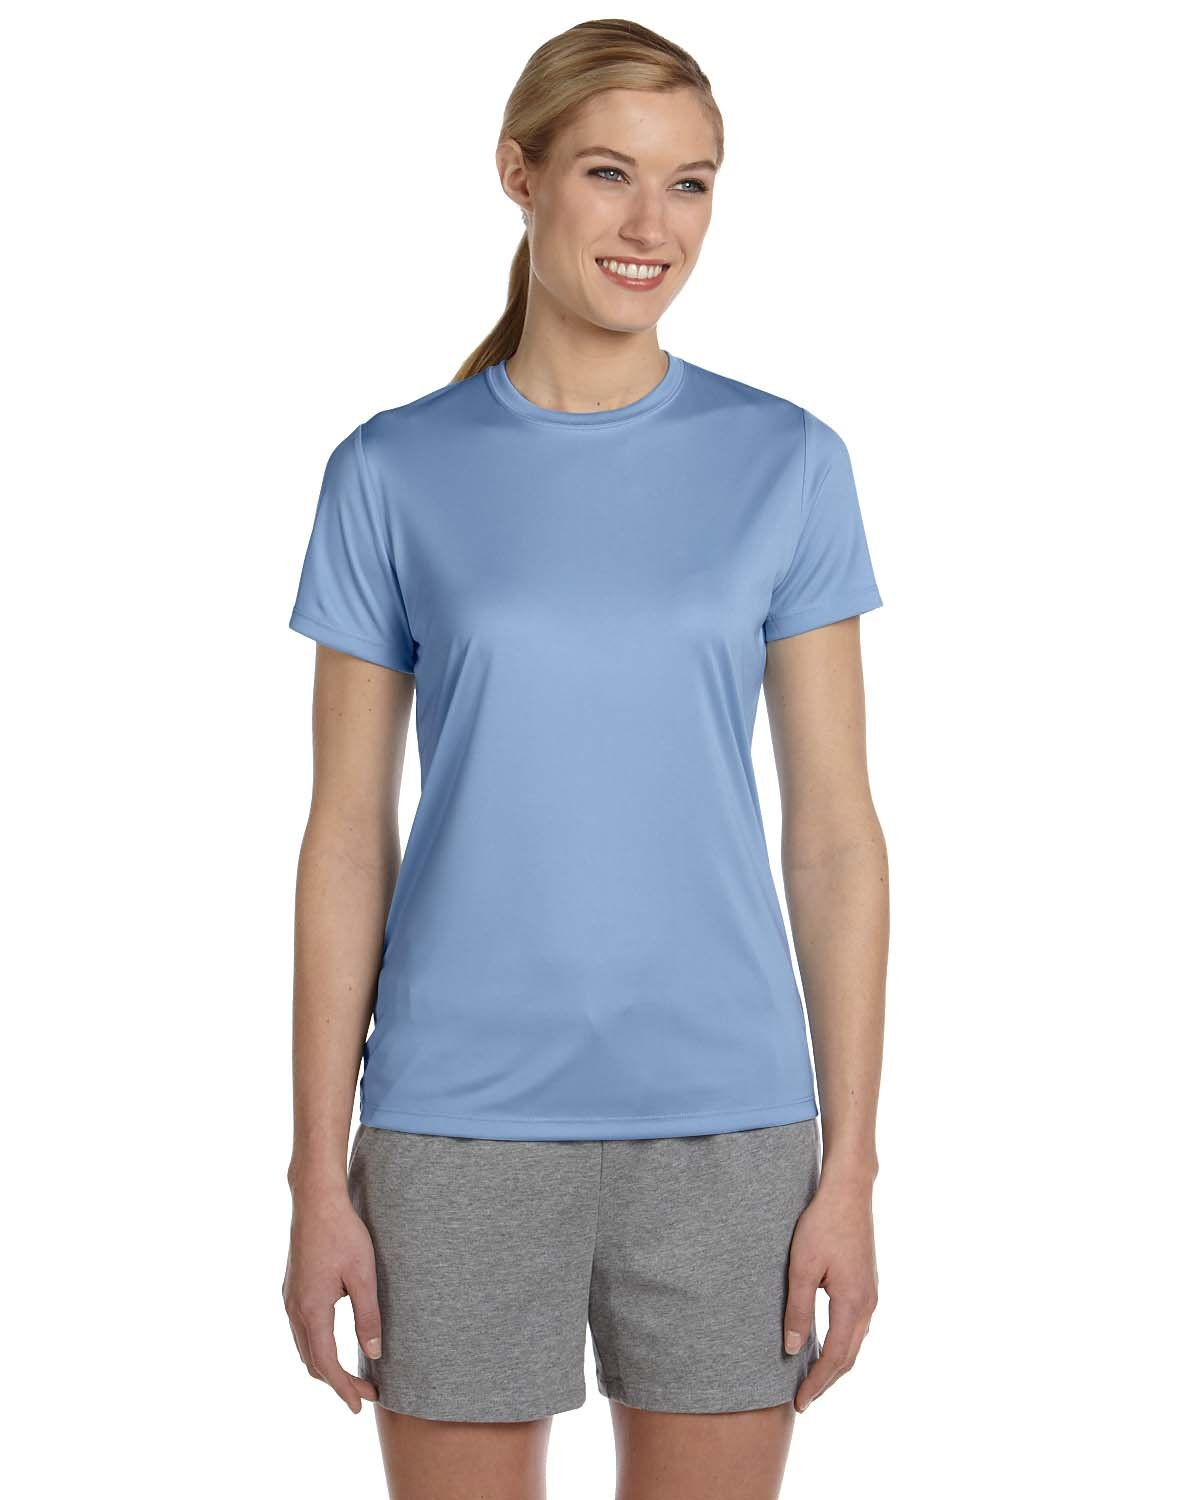 Hanes Womens UV Protection Cool Performance T-Shirt at Amazon Womens Clothing store: